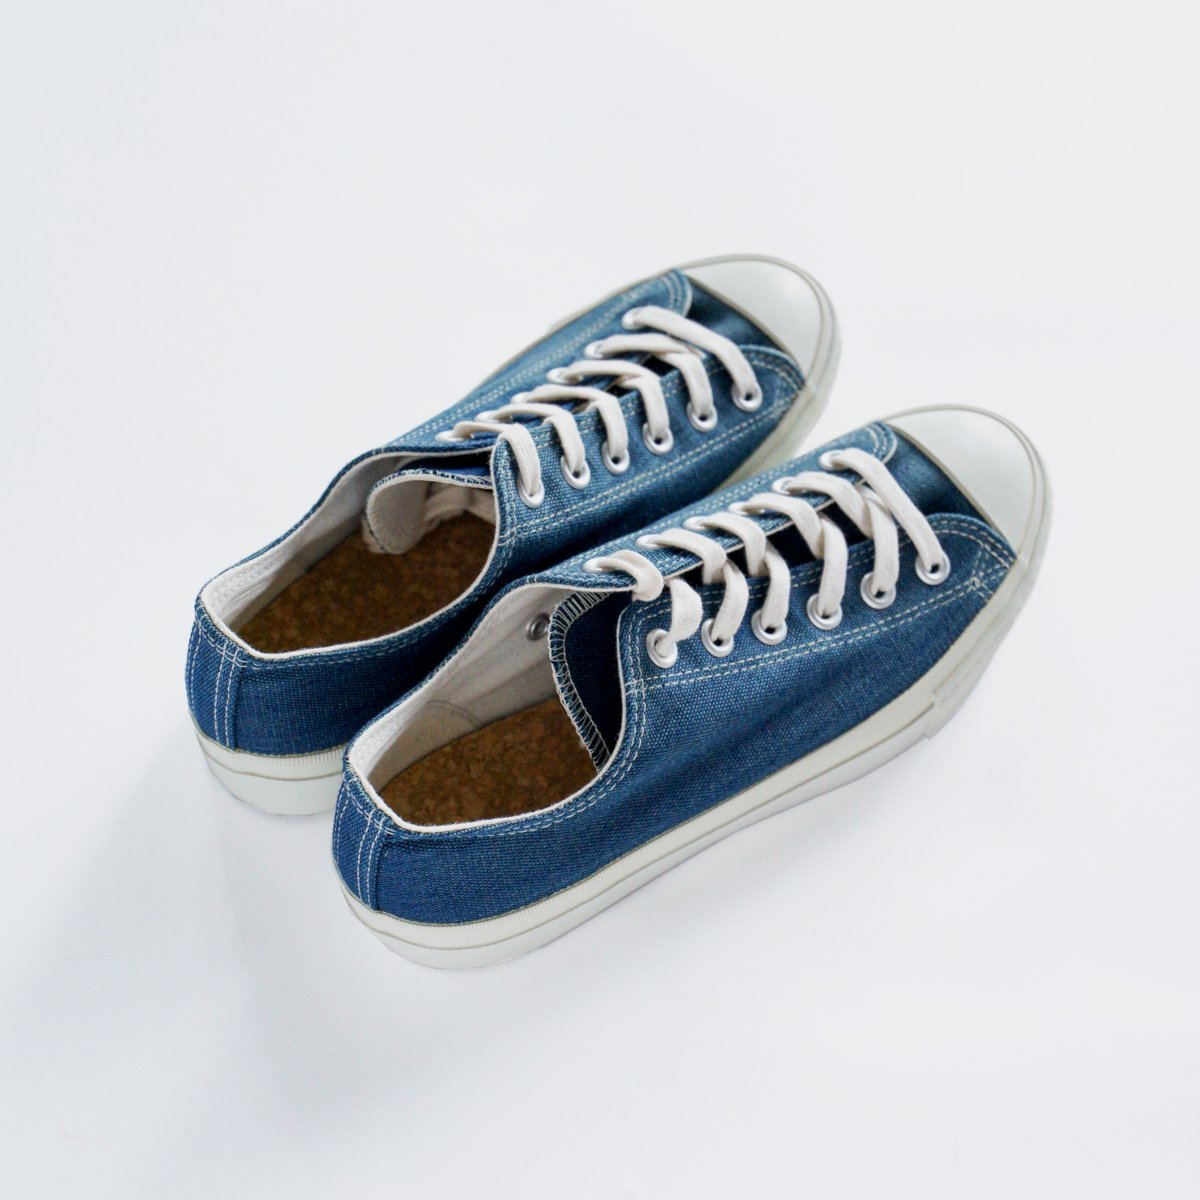 DOEK CANVAS SNEAKER 'BASKET' (NAVY)4